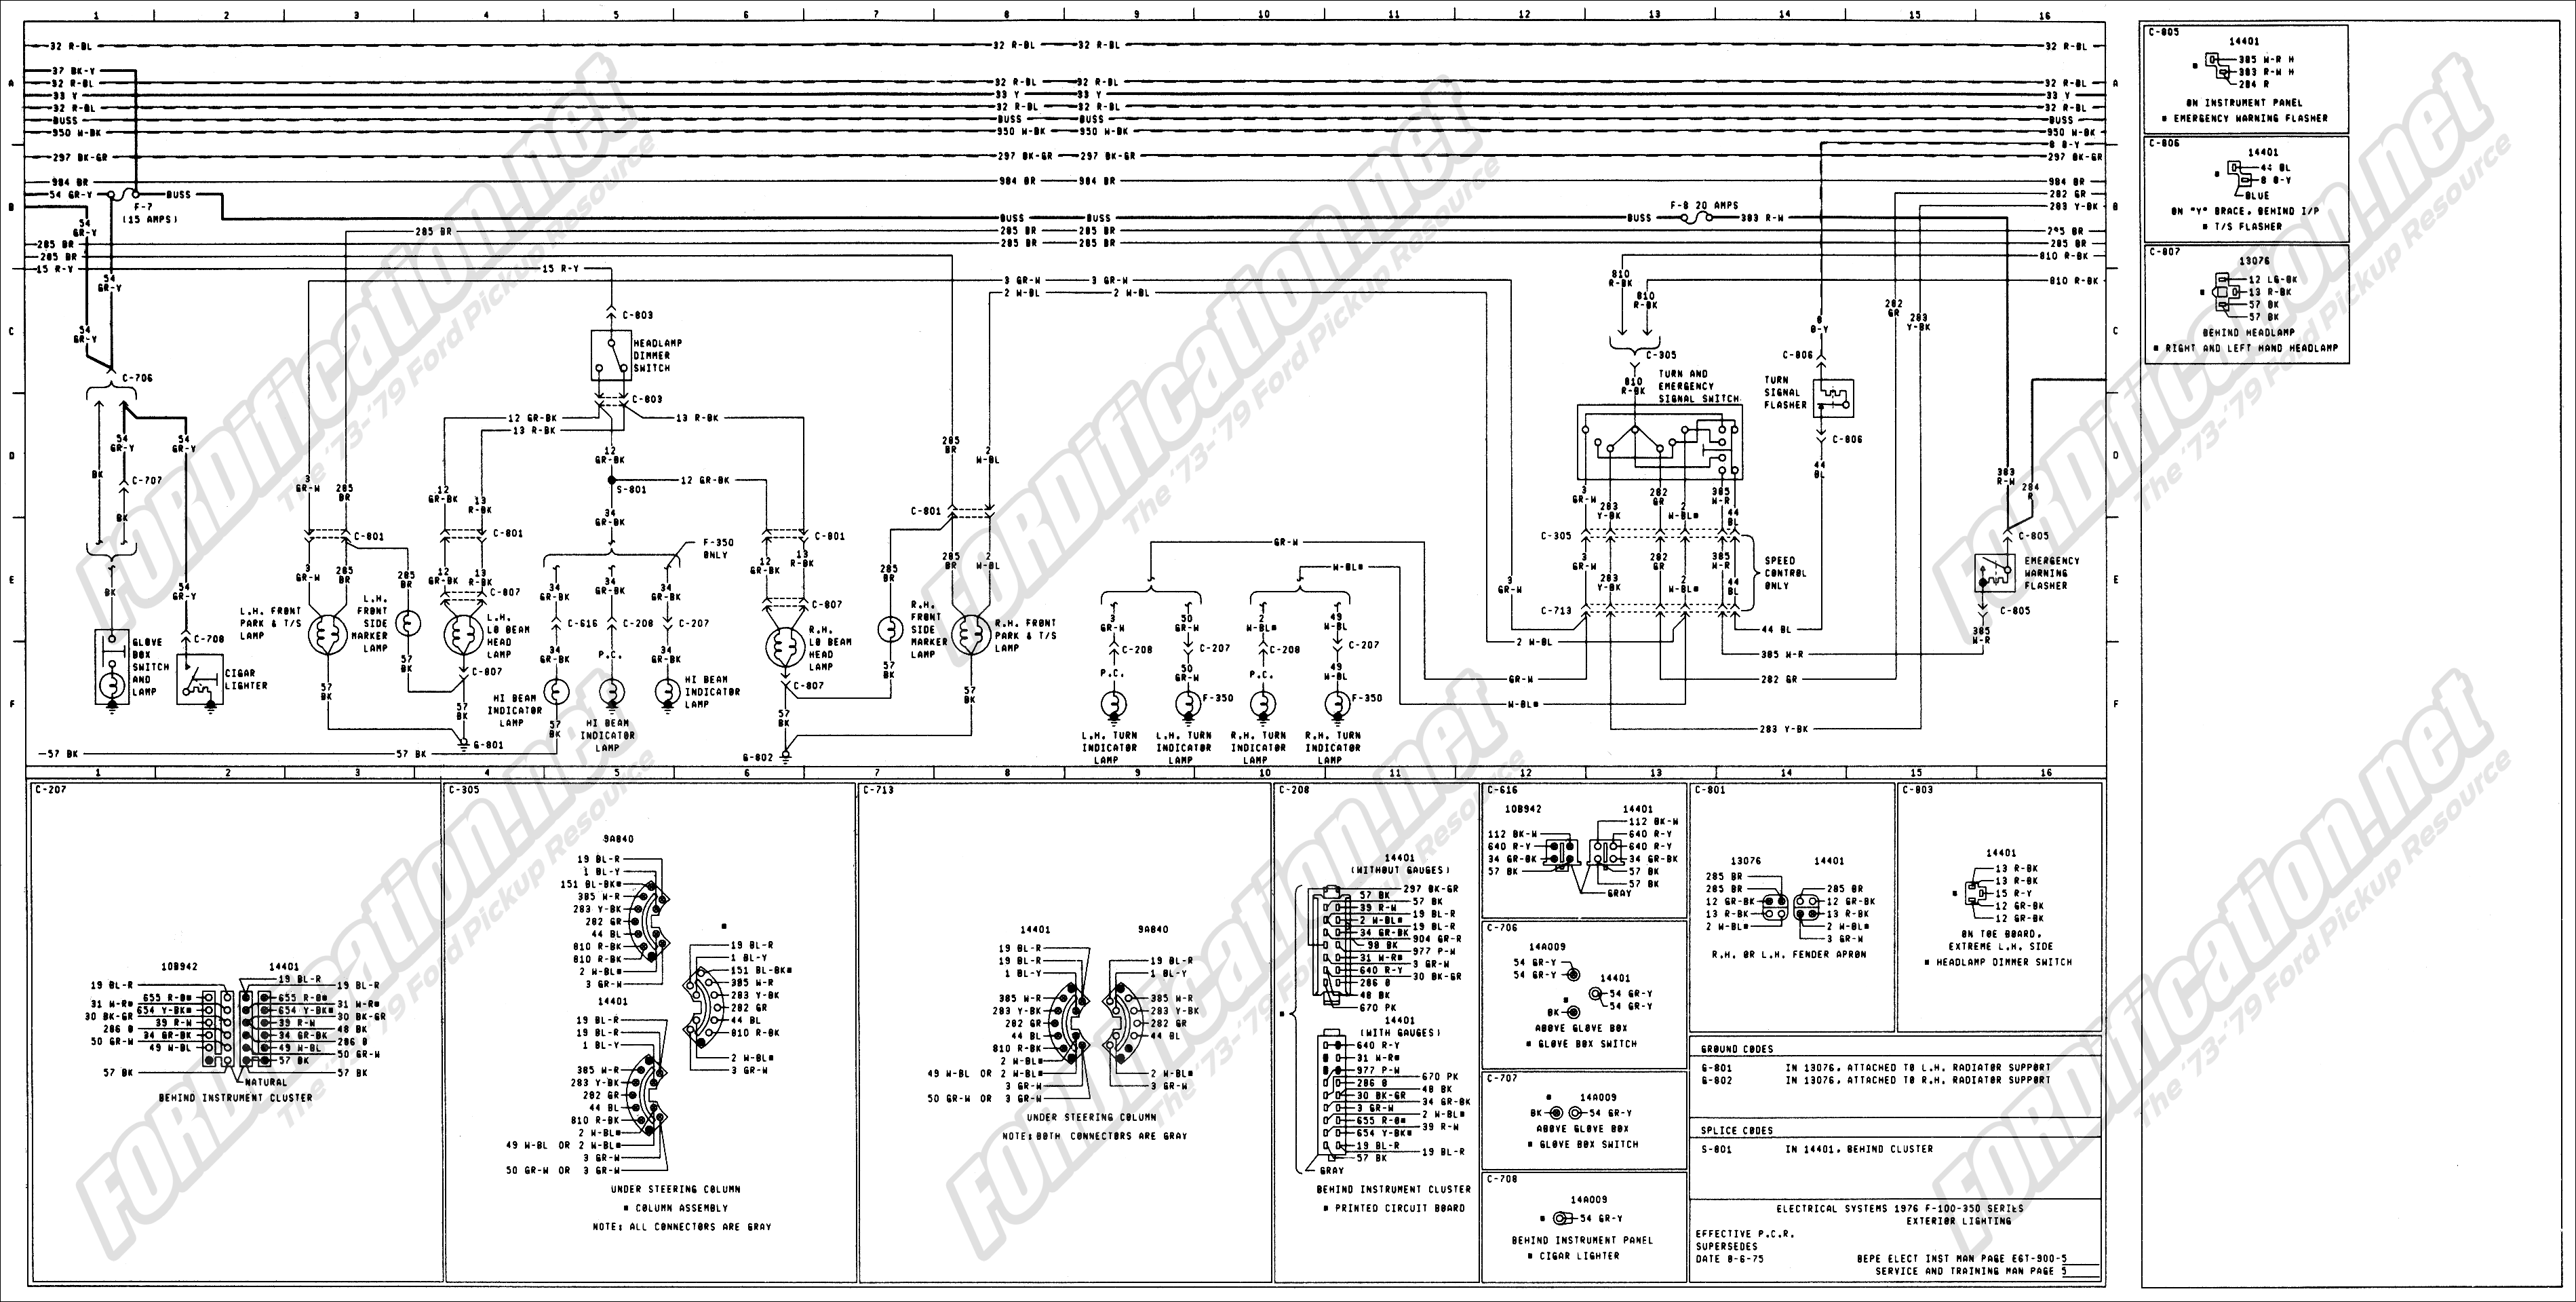 99 ford f 250 wiring diagrams detailed schematics diagram rh keyplusrubber  com 1978 ford f250 fuse box diagram 1978 f250 fuse box